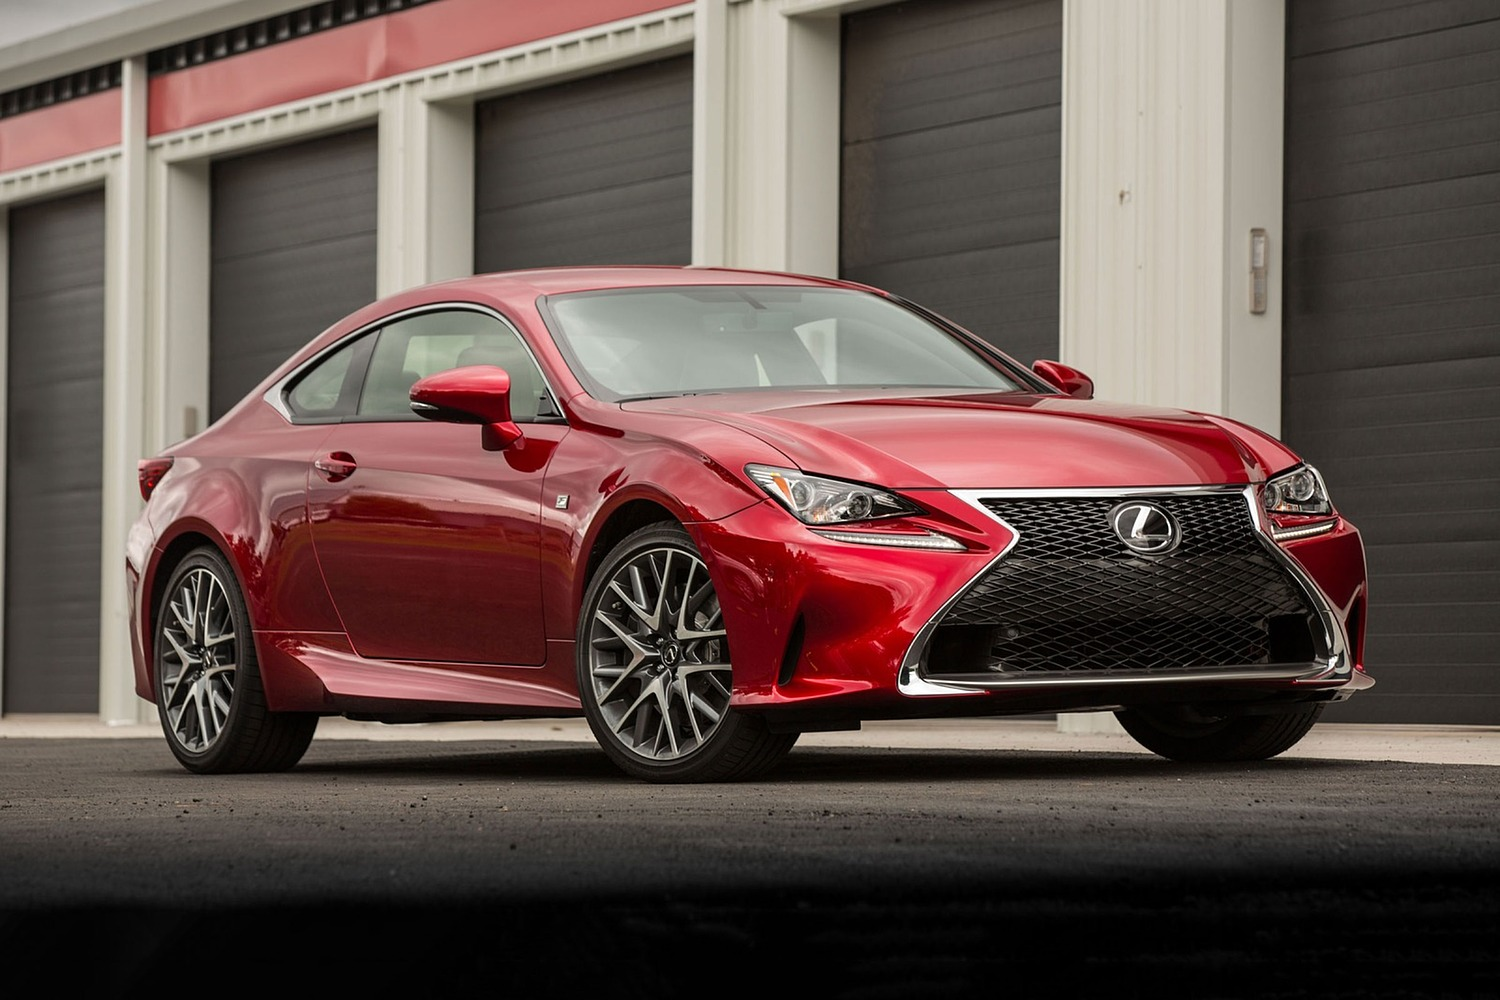 Lexus RC 350 Coupe Exterior. F-Sport Package Shown. (2017 model year shown)